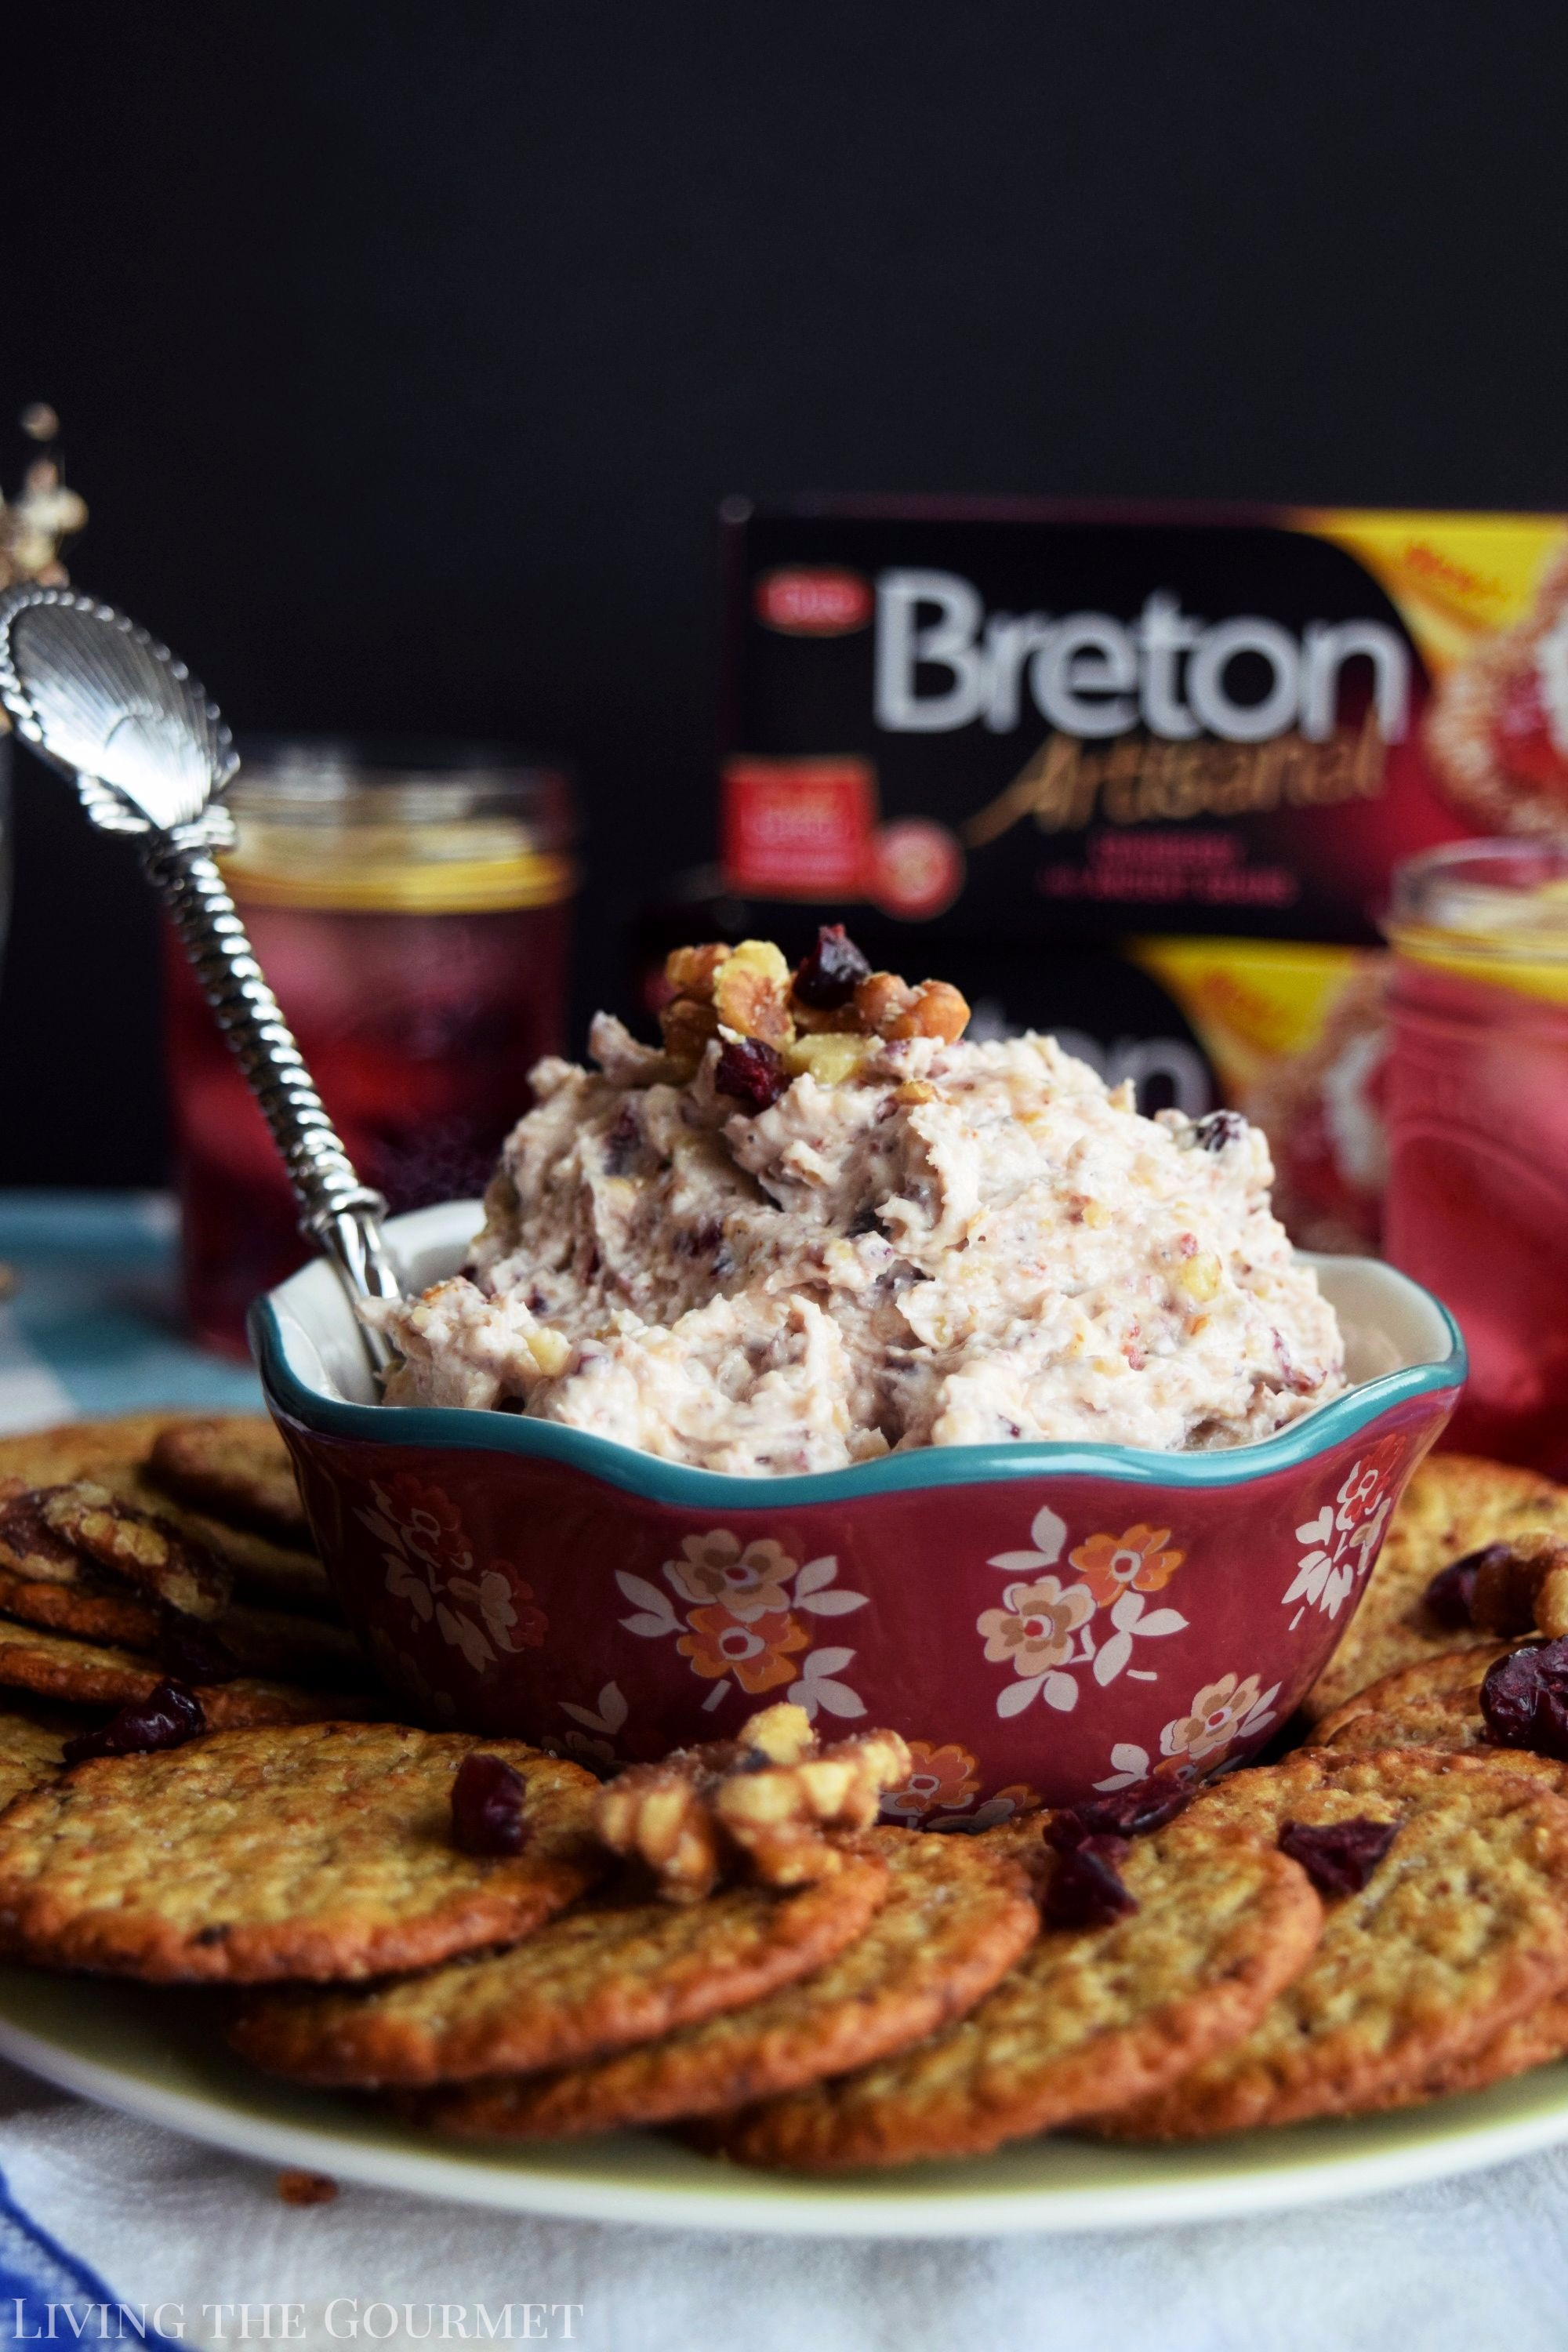 Living the Gourmet: This Cranberry, Walnut and Honey Spread is a perfect send off to summer. It is a light, delicious spread that evokes the flavors of the Fall season. #BetterWithBreton #ad